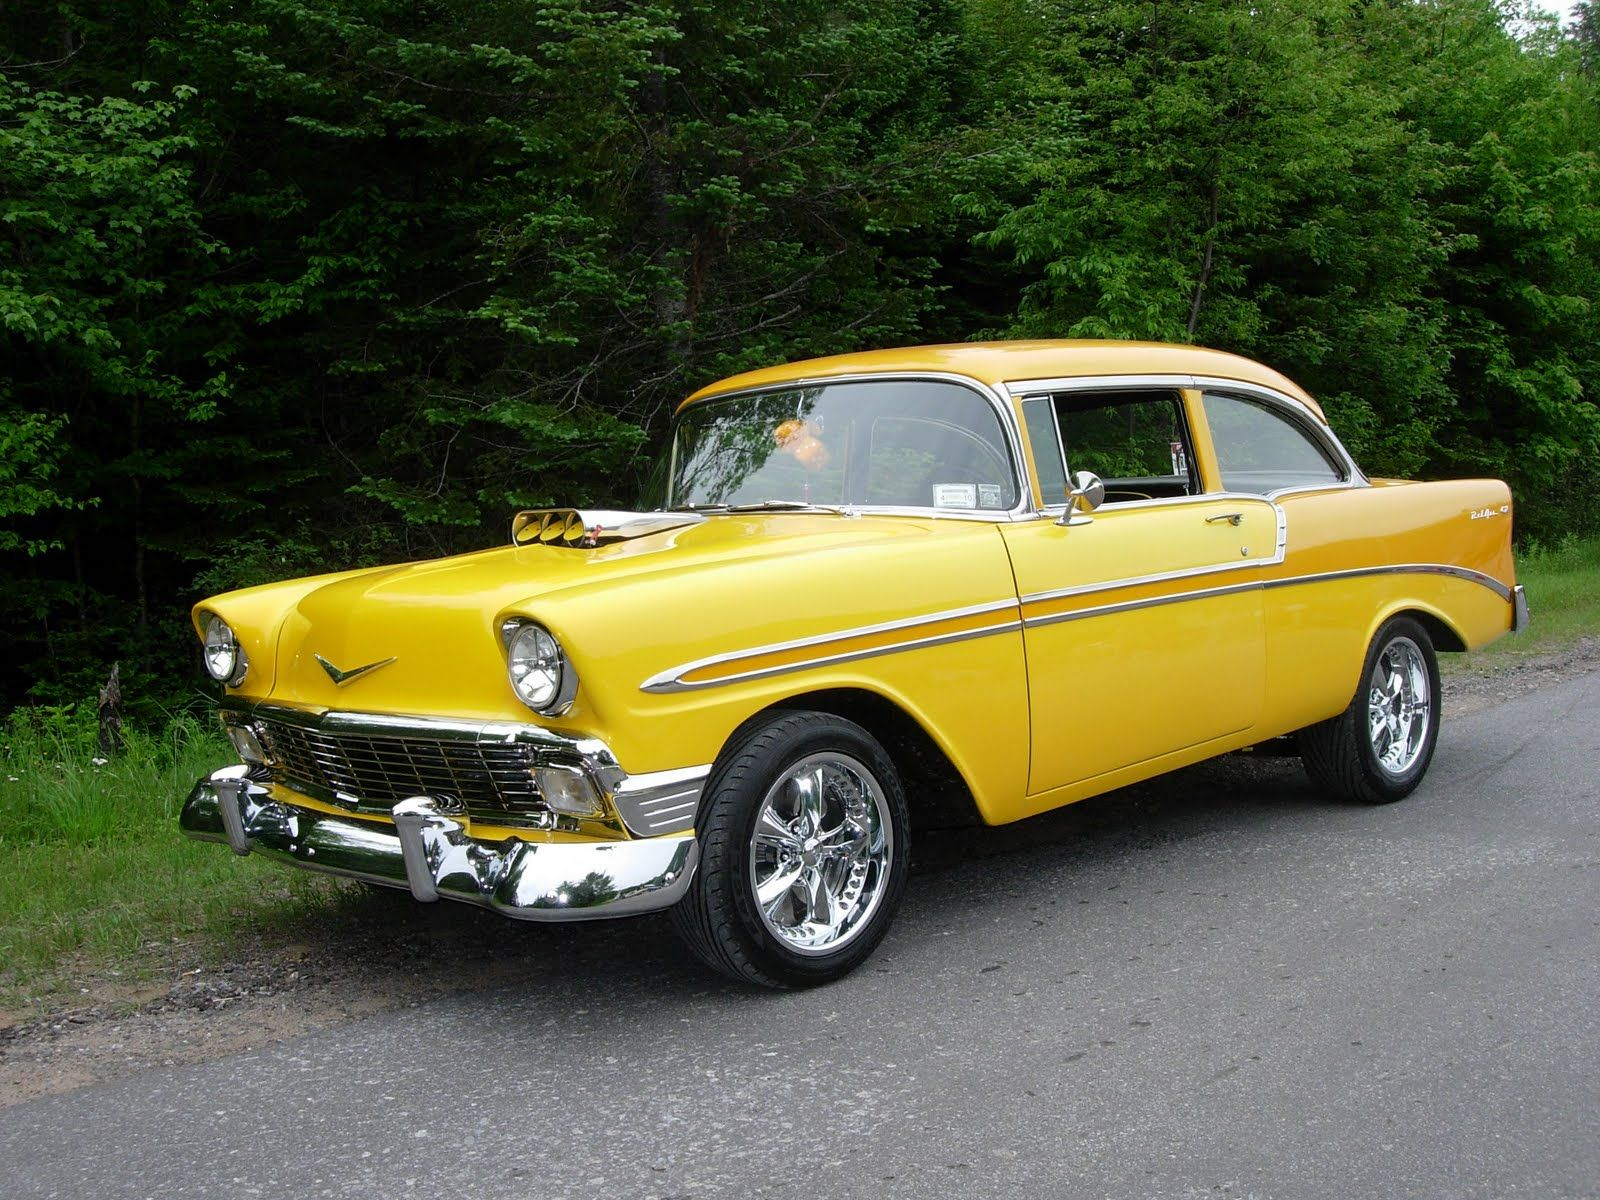 56' Beauty SHOP SAFE! THIS CAR, AND ANY OTHER CAR YOU